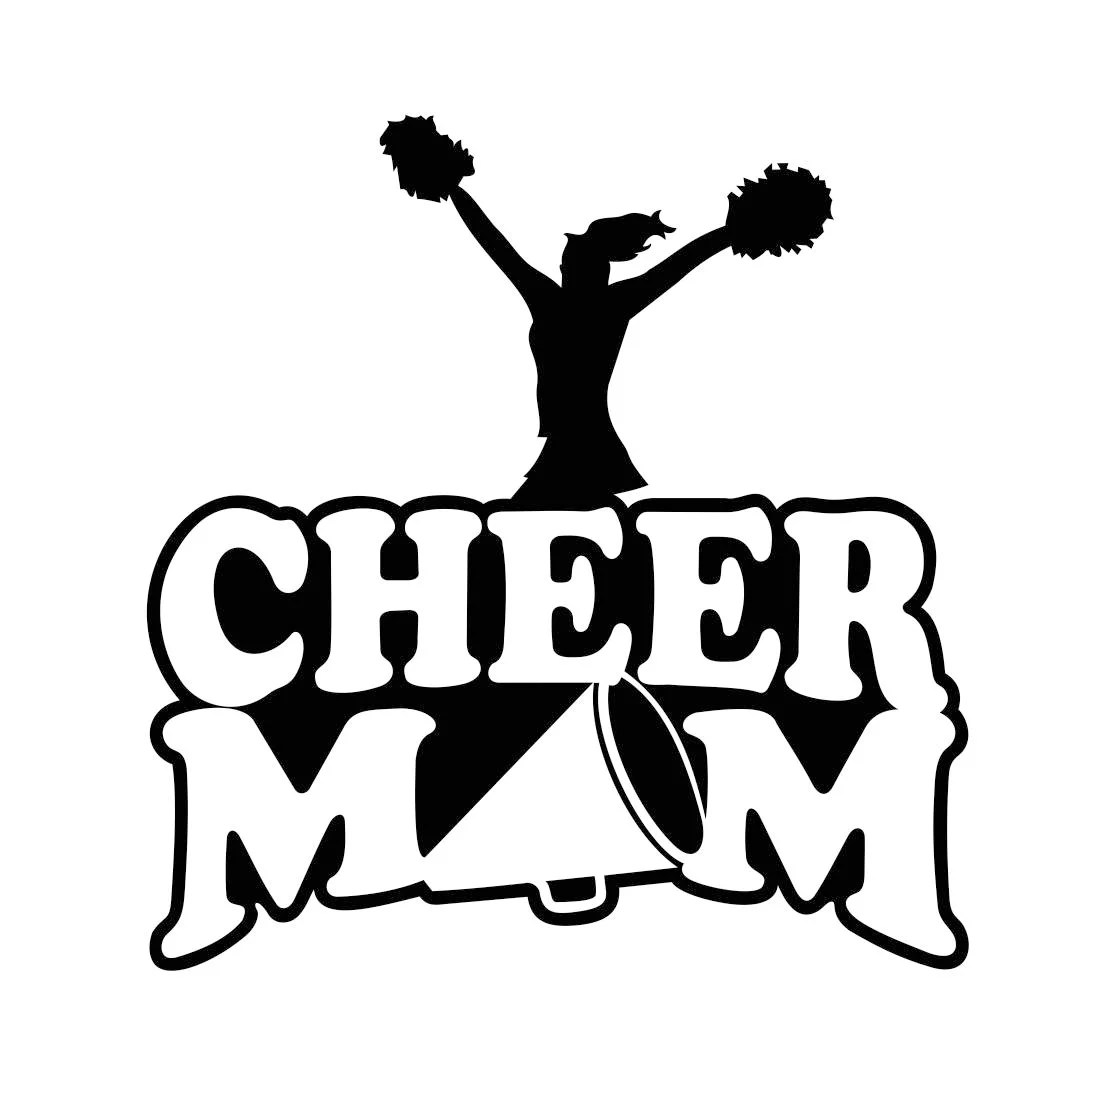 Cheer Mom Graphics Svg Dxf Eps Cdr Ai Vector Art